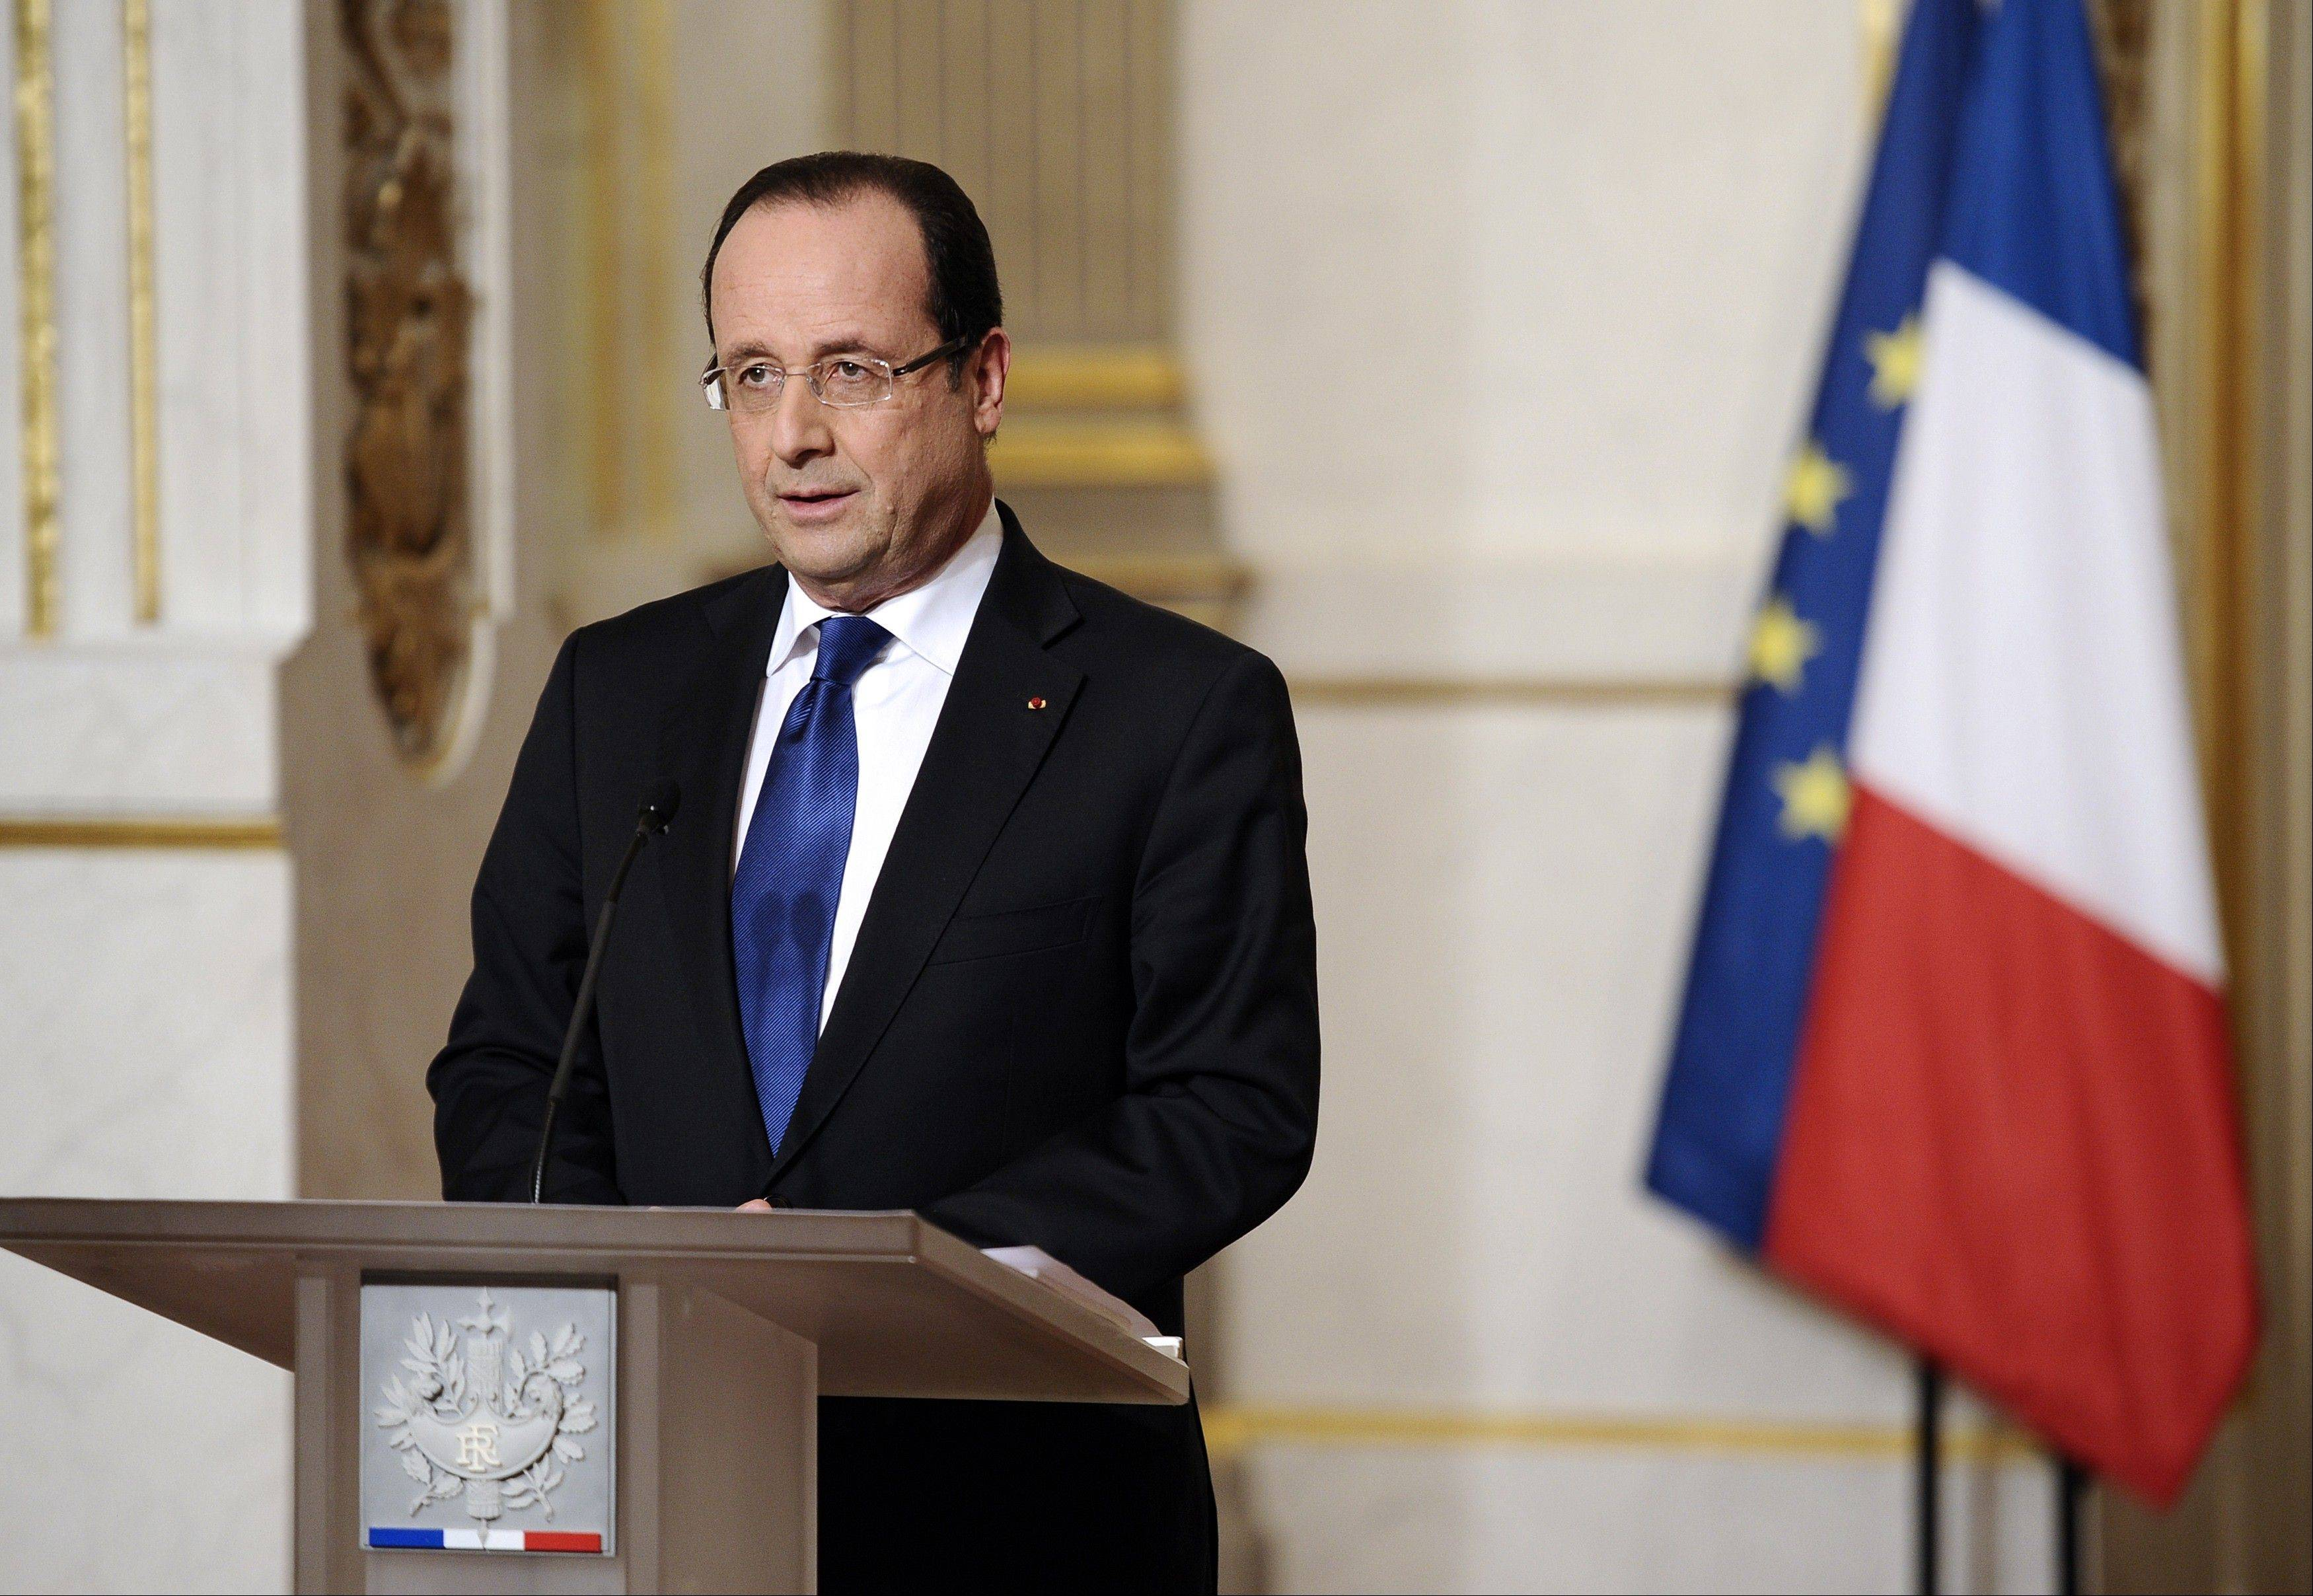 France�s president Francois Hollande gives a speech focused on the Malian situation on Saturday at the Elysee presidential palace in Paris. Backed by French air power, Malian troops on Friday unleashed an offensive against Islamist rebels who, having seized control of the north of the country in March last year, were threatening to push south. France has asked the United Nations to �accelerate� implementation of a resolution that enables the deployment of an international force to Mali.